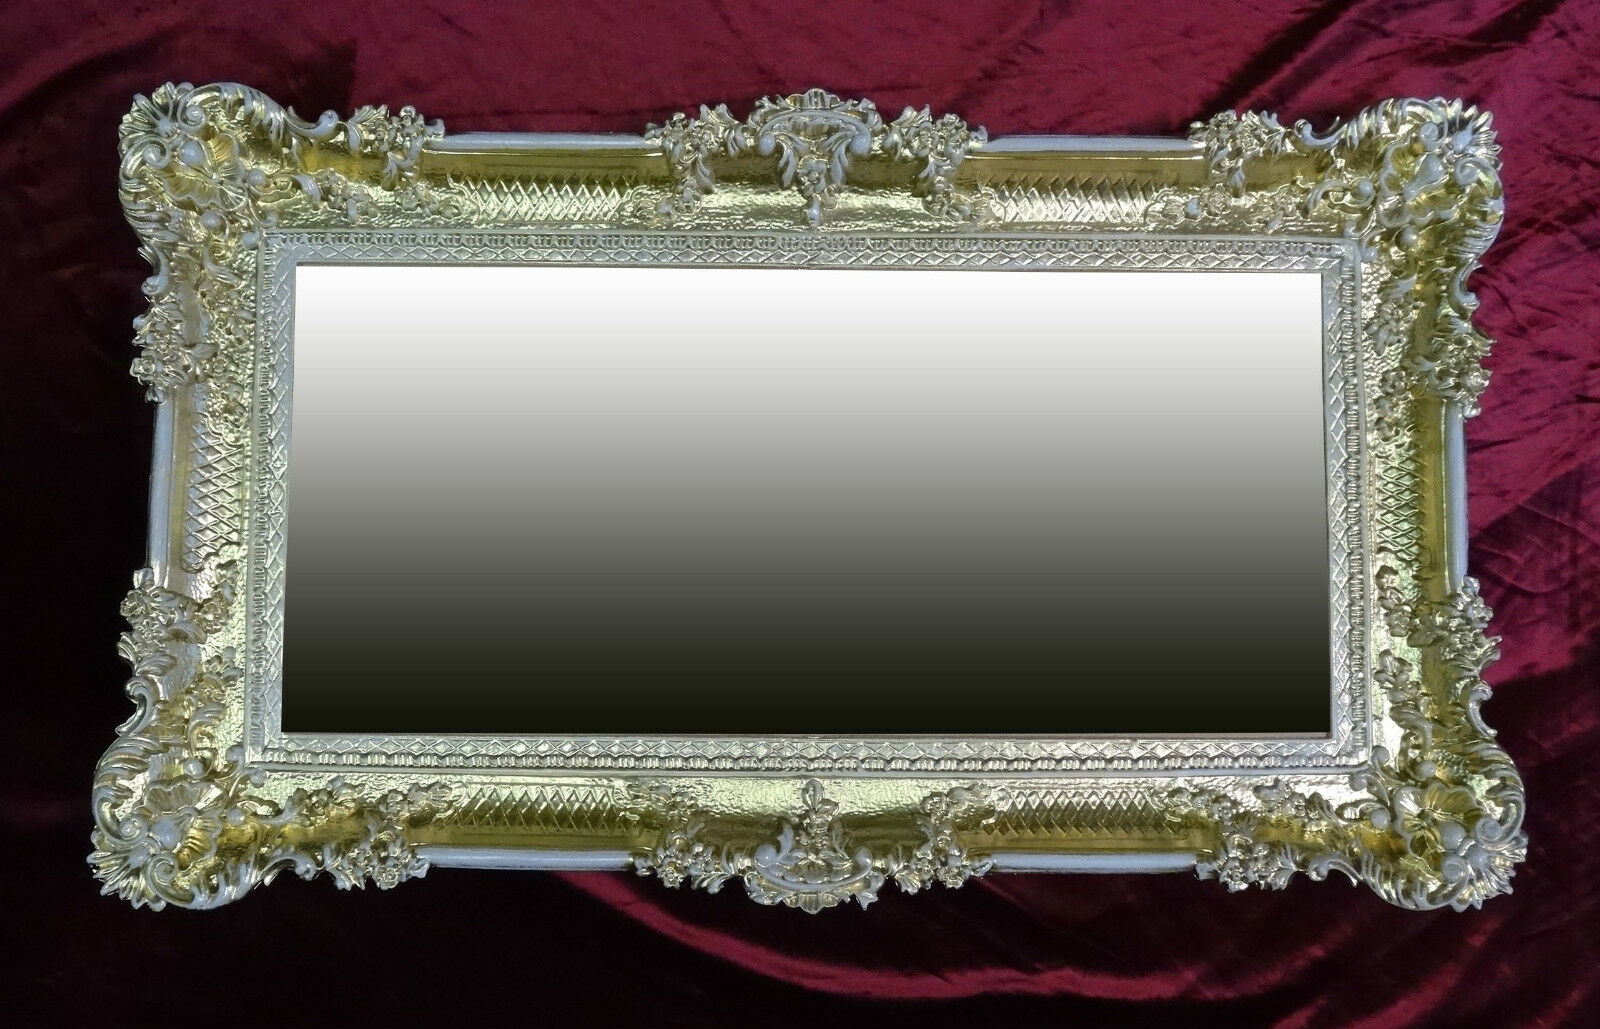 Picture Frame Photo Baroque Rococo Magnificently Antique 96x57 Gold 1 Antiques Other Antique Decorative Arts